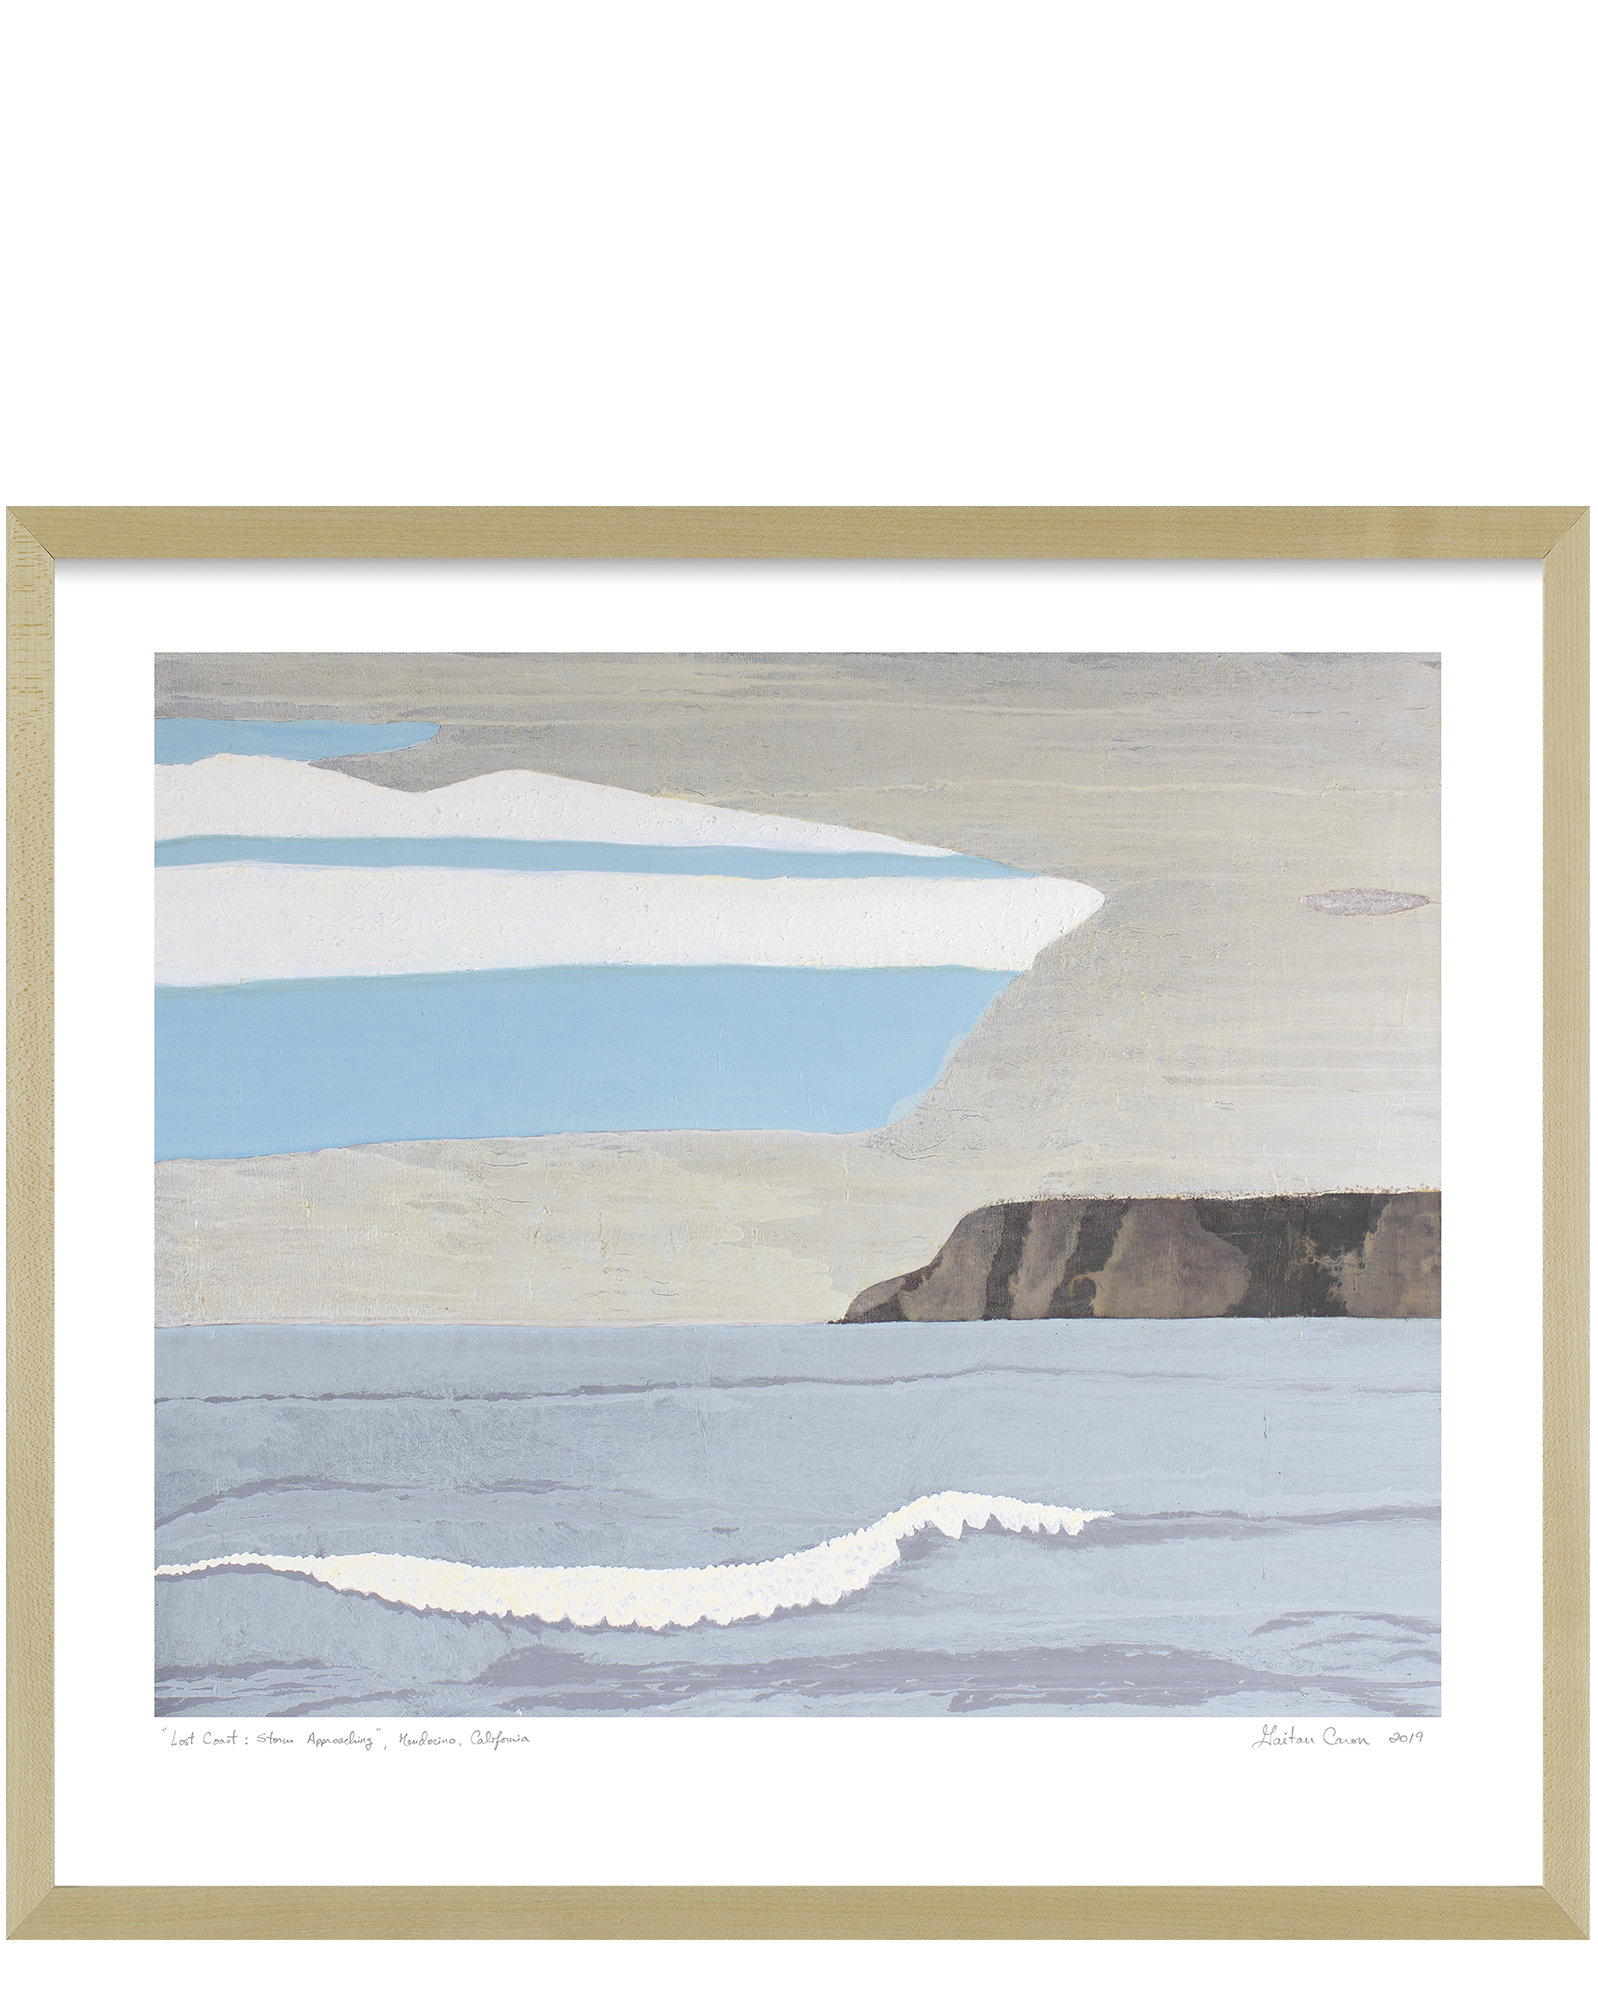 """Lost Coast: Storm Approaching"" by Gaetan Caron, Maple Frame"